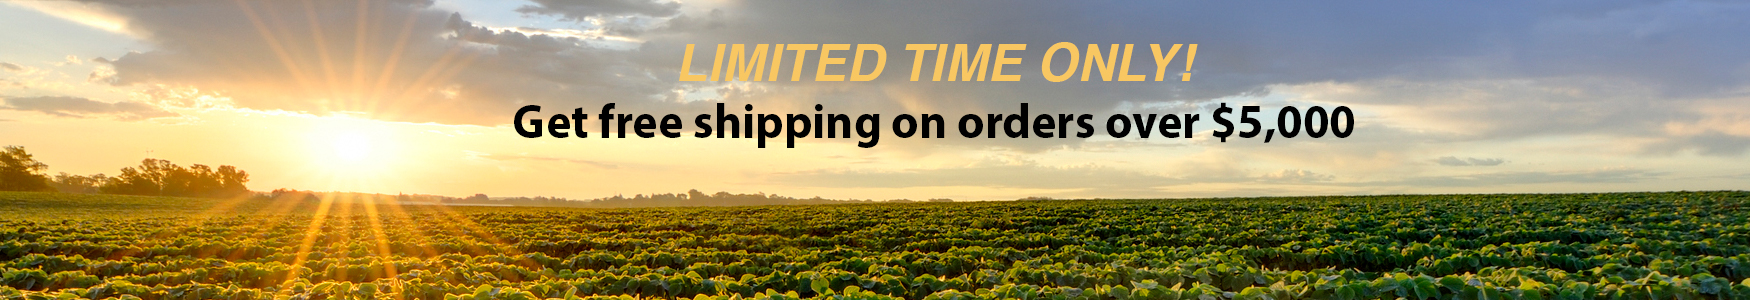 Limited time only! Get free shipping on orders over $5000